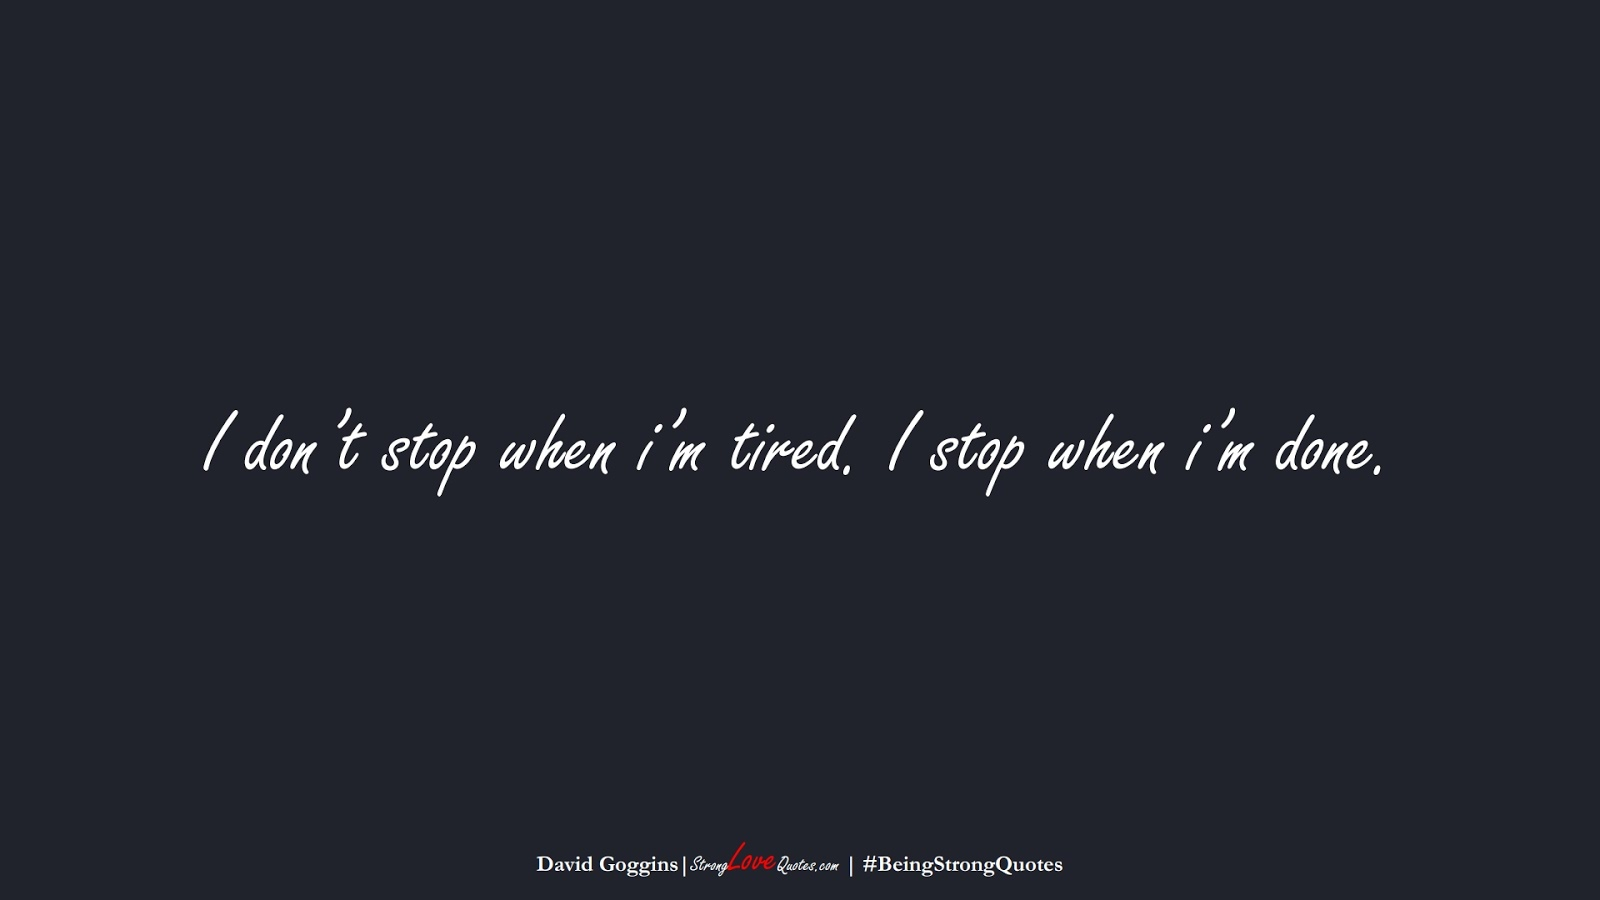 I don't stop when i'm tired. I stop when i'm done. (David Goggins);  #BeingStrongQuotes